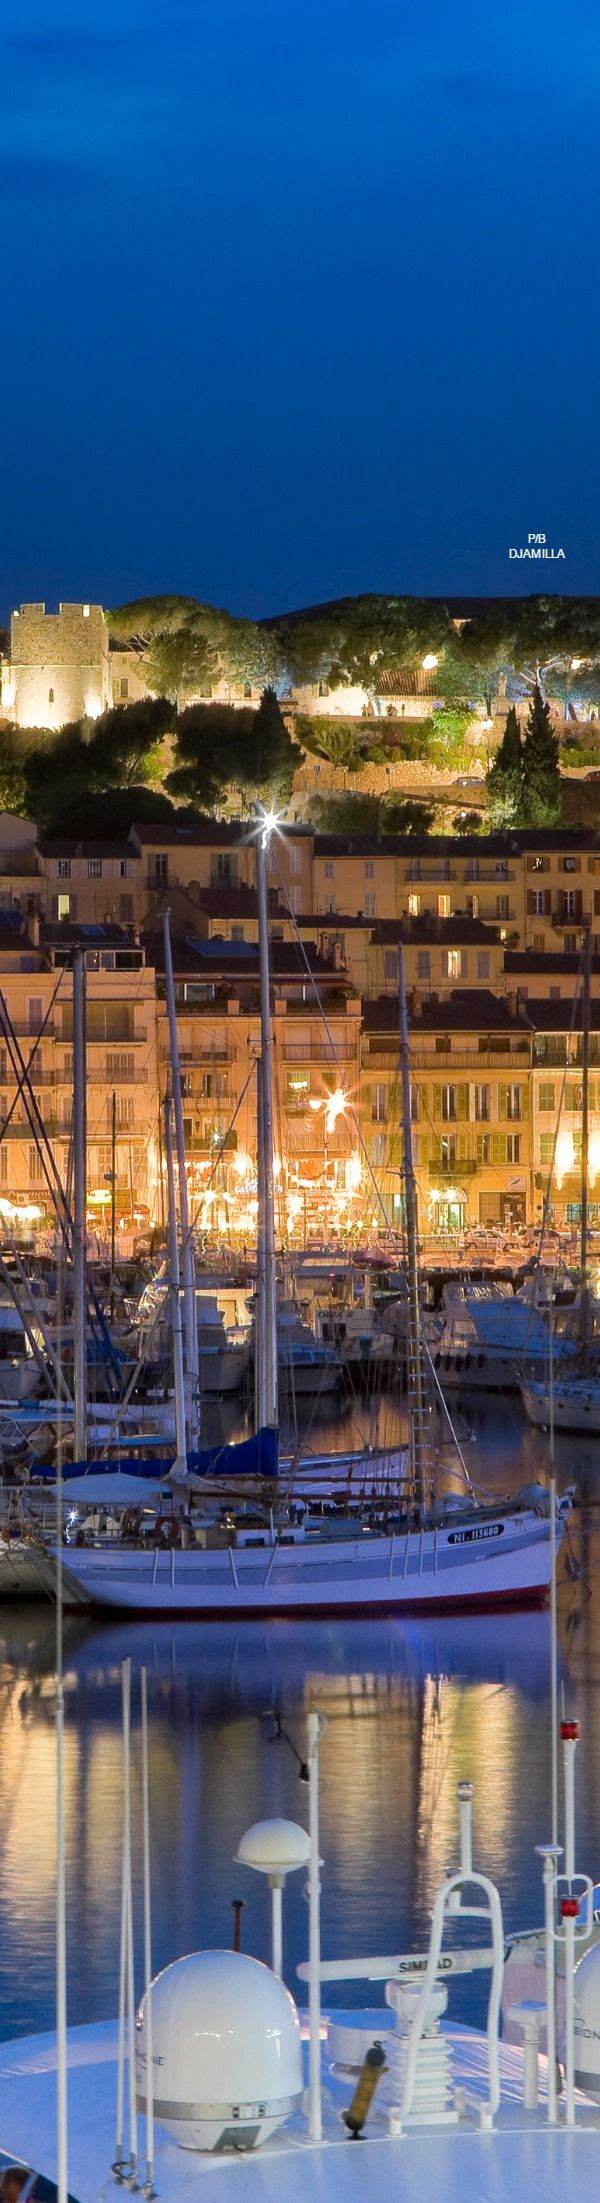 Cannes - France  Find Super Cheap International Flights to Cannes, France ✈✈✈ https://thedecisionmoment.com/cheap-flights-to-europe-france-cannes/